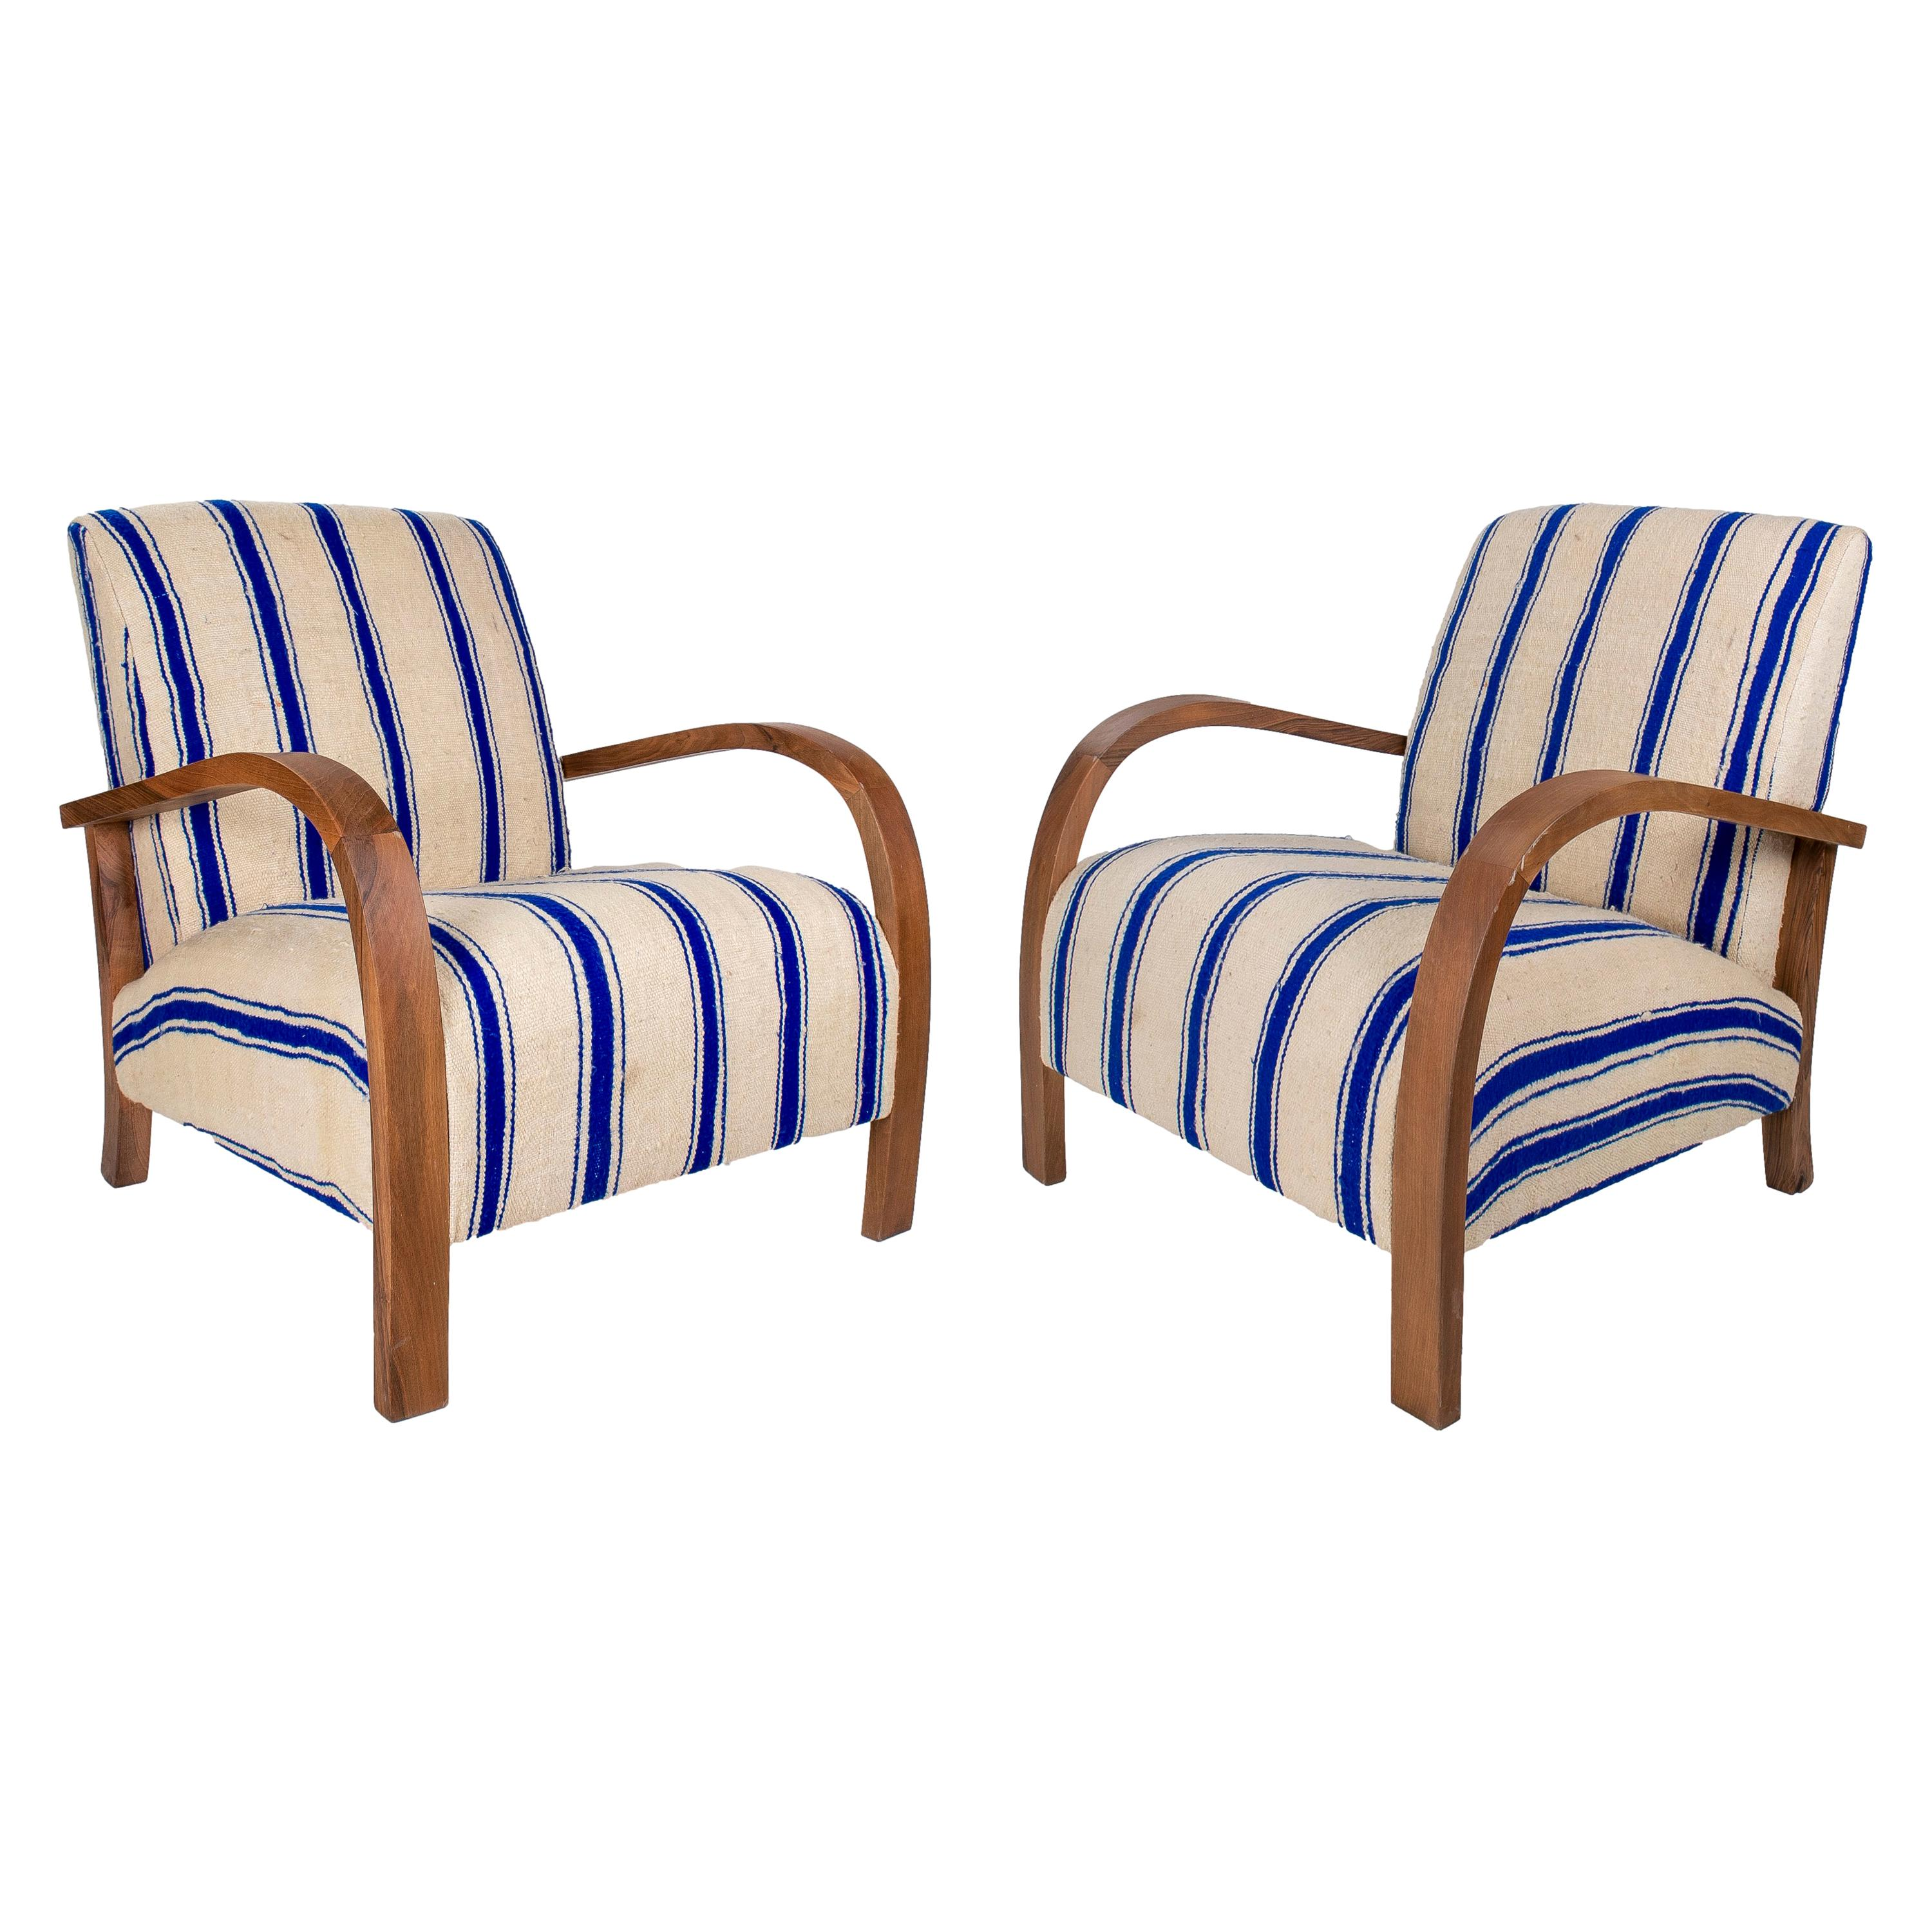 Vintage 1990s Pair of Spanish White and Blue Upholstered Armchairs